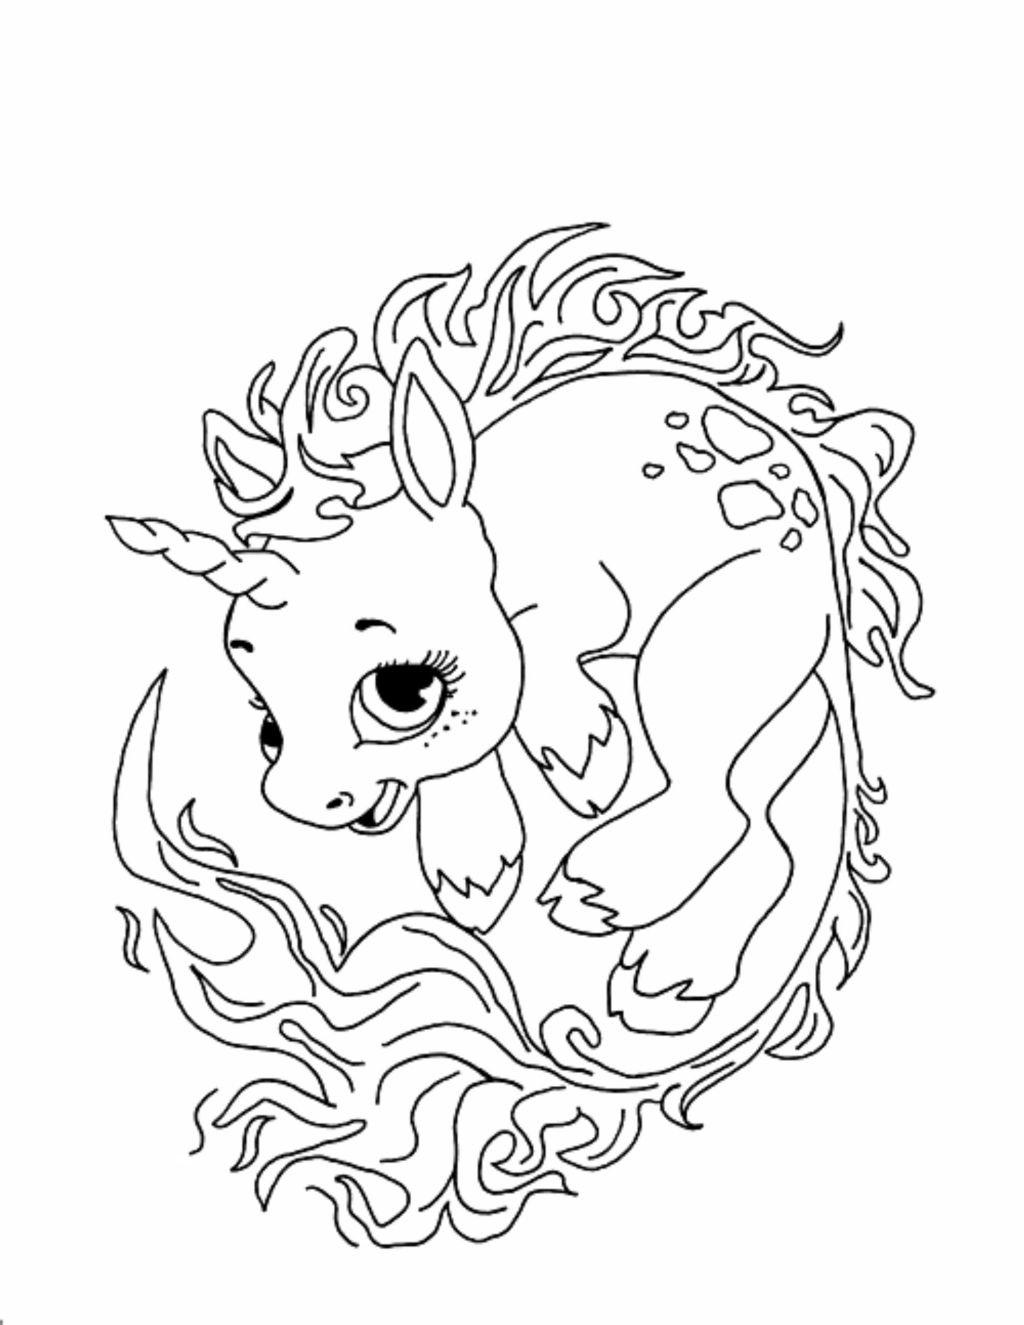 unicorn to color simple chibi unicorn coloring pages free printable color unicorn to